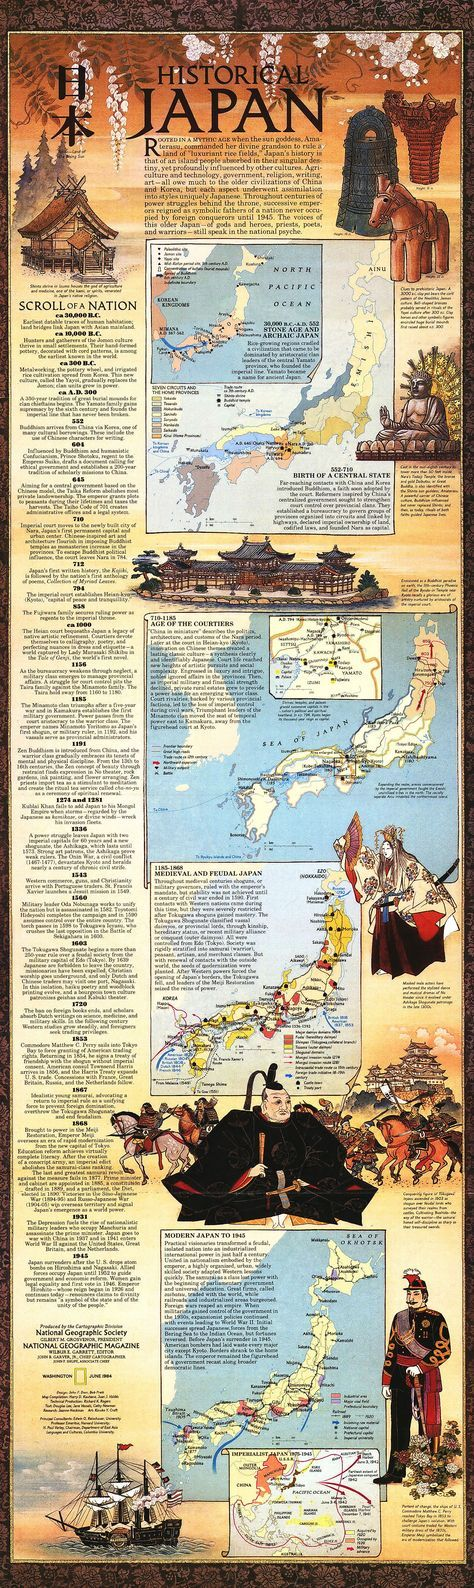 Historical Timeline of Japan 1984 Infographic. Topic: history, medieval, samurai, geographic, empire, Japanese.